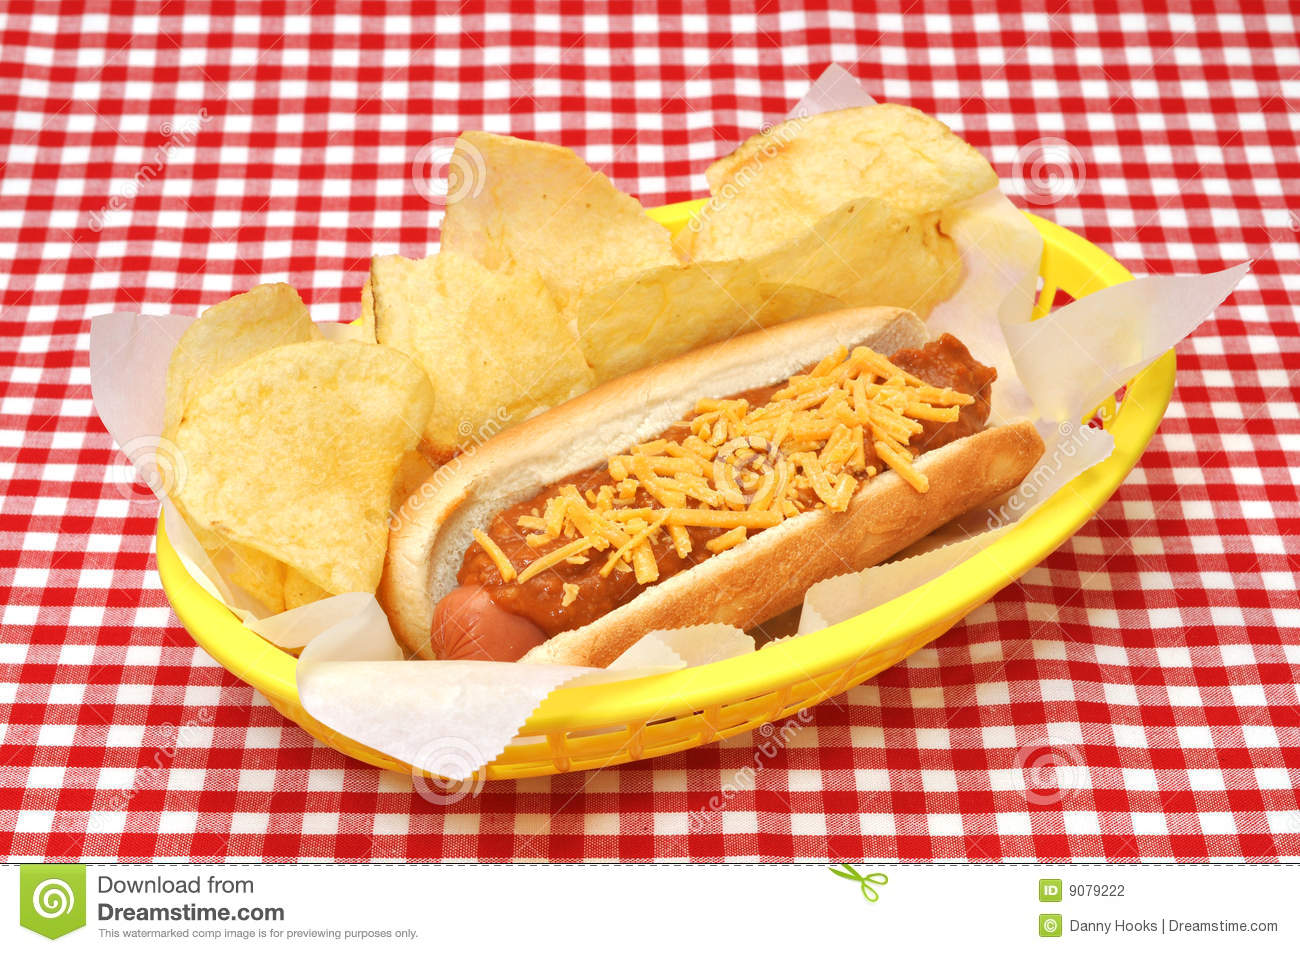 maple leaf consumer foods fixing hotdogs More than 26,000 packages of wieners have been ordered pulled from store shelves in eastern canada after they were mistakenly shipped despite some of the hot dogs testing positive for listeria, maple leaf said tuesday.